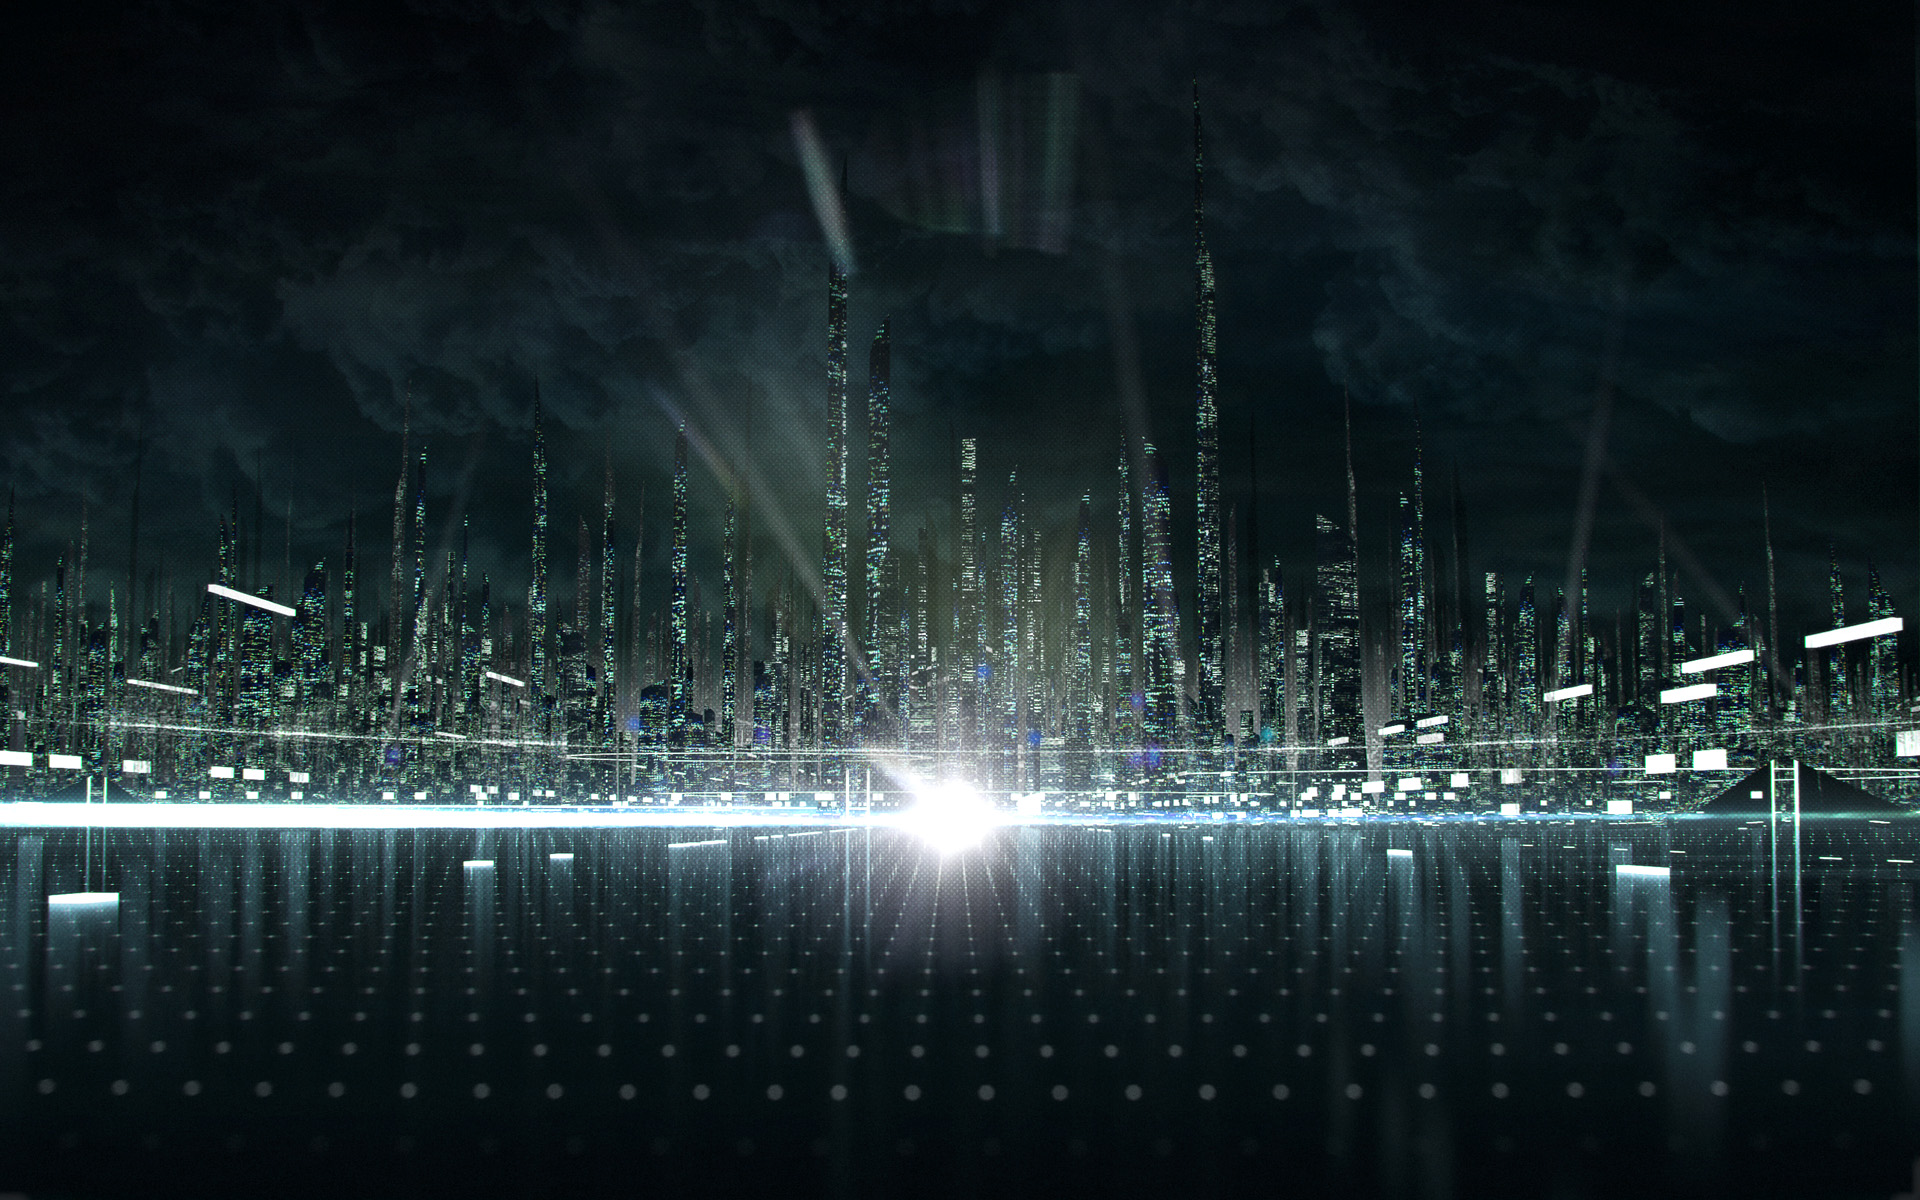 The city in the tron virtual world from disney s tron legacy movie